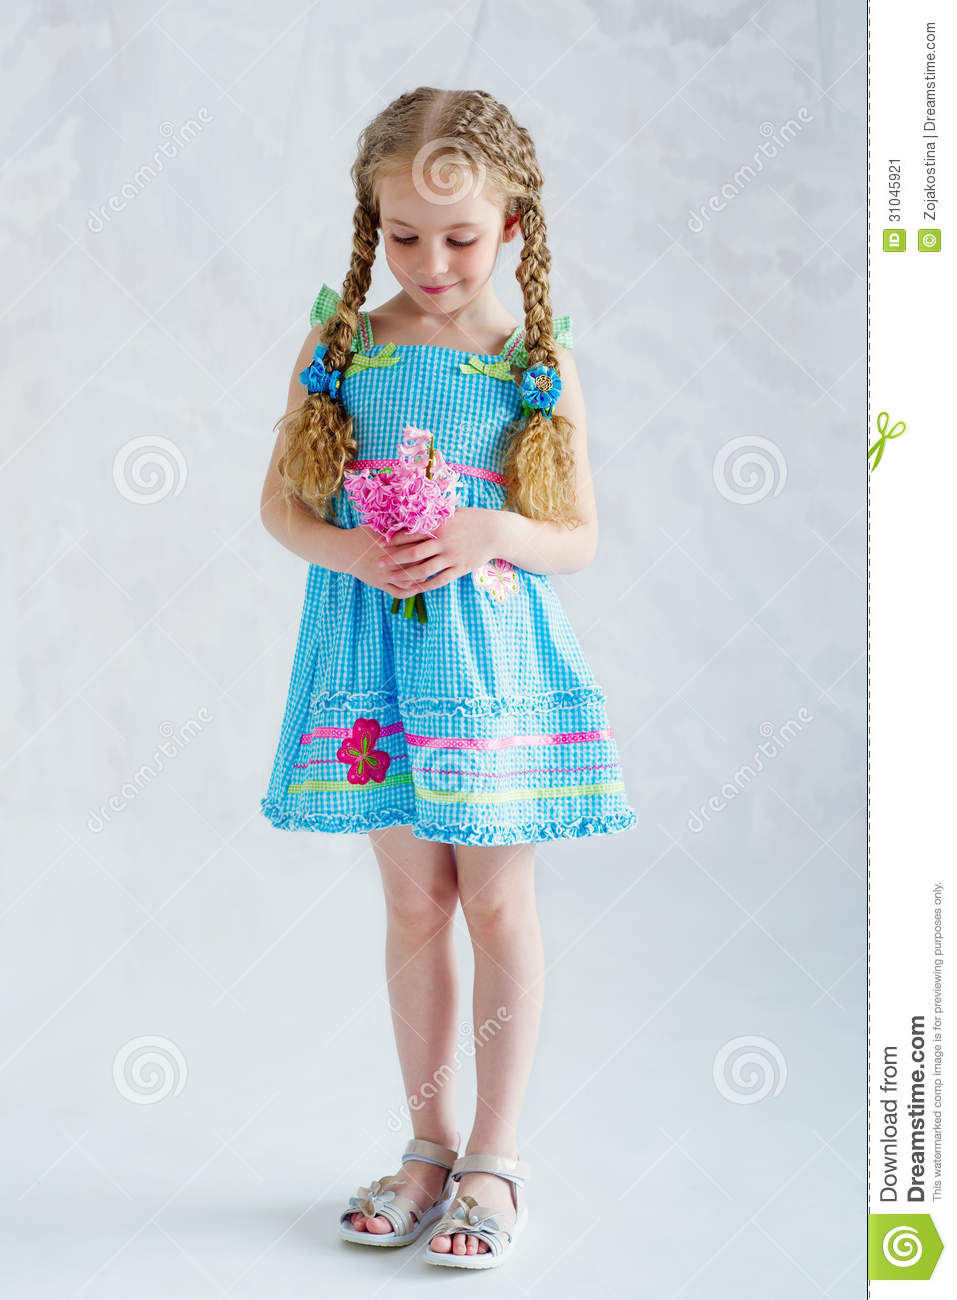 Images of Little Girl Summer Dresses - Reikian